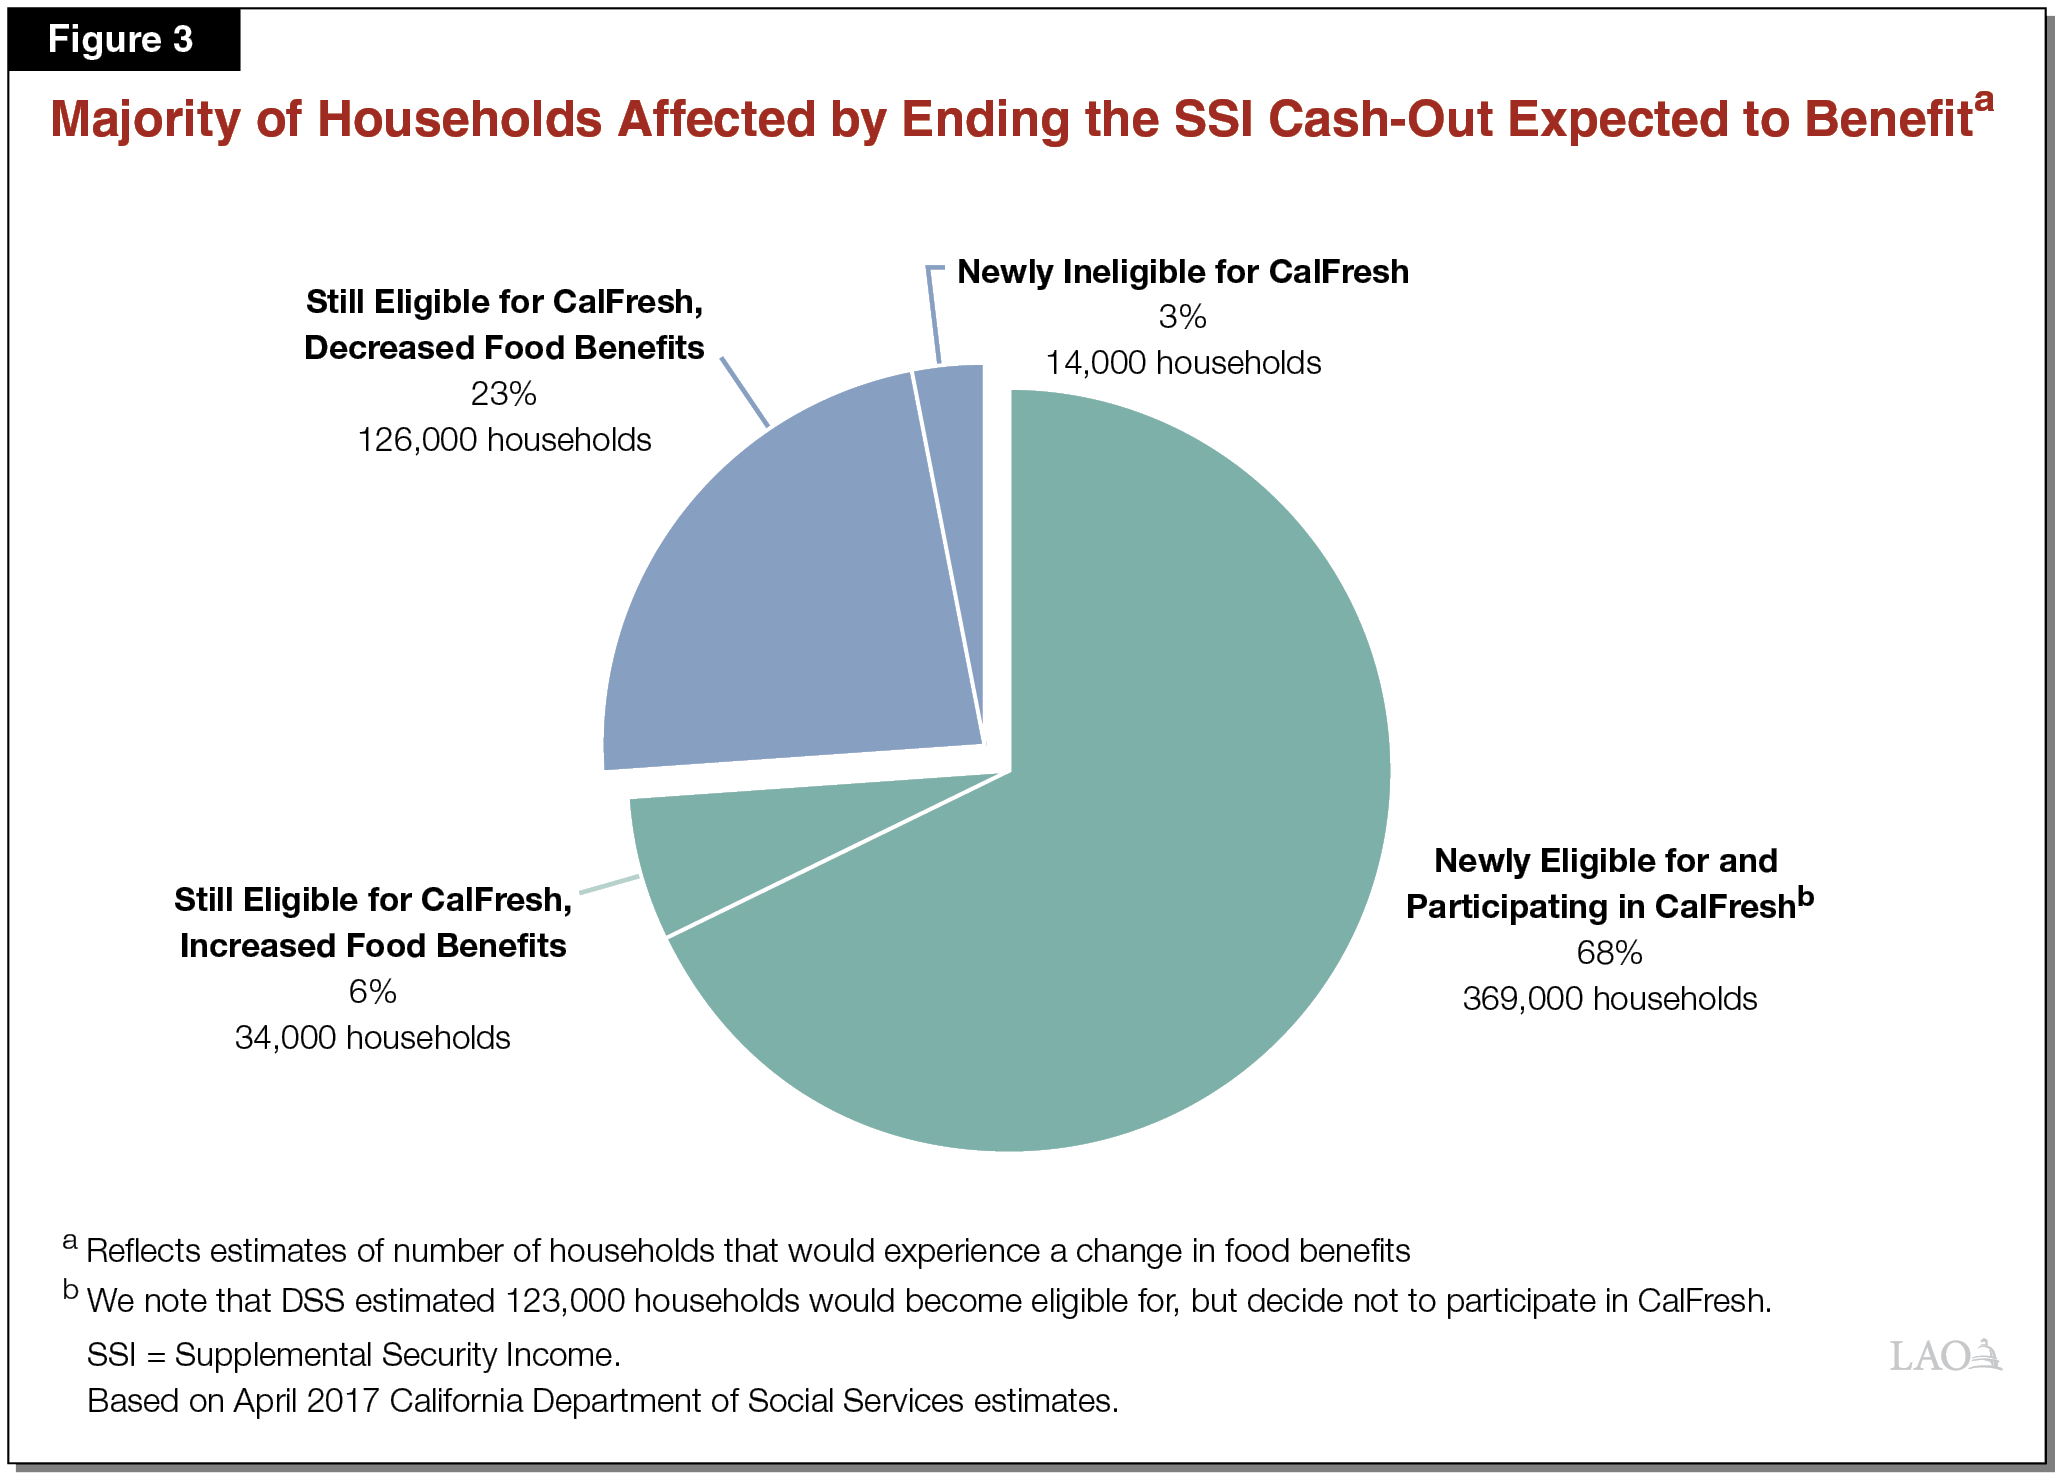 Majority of Households Expected to Benefit From Ending the SSI Cash-Out